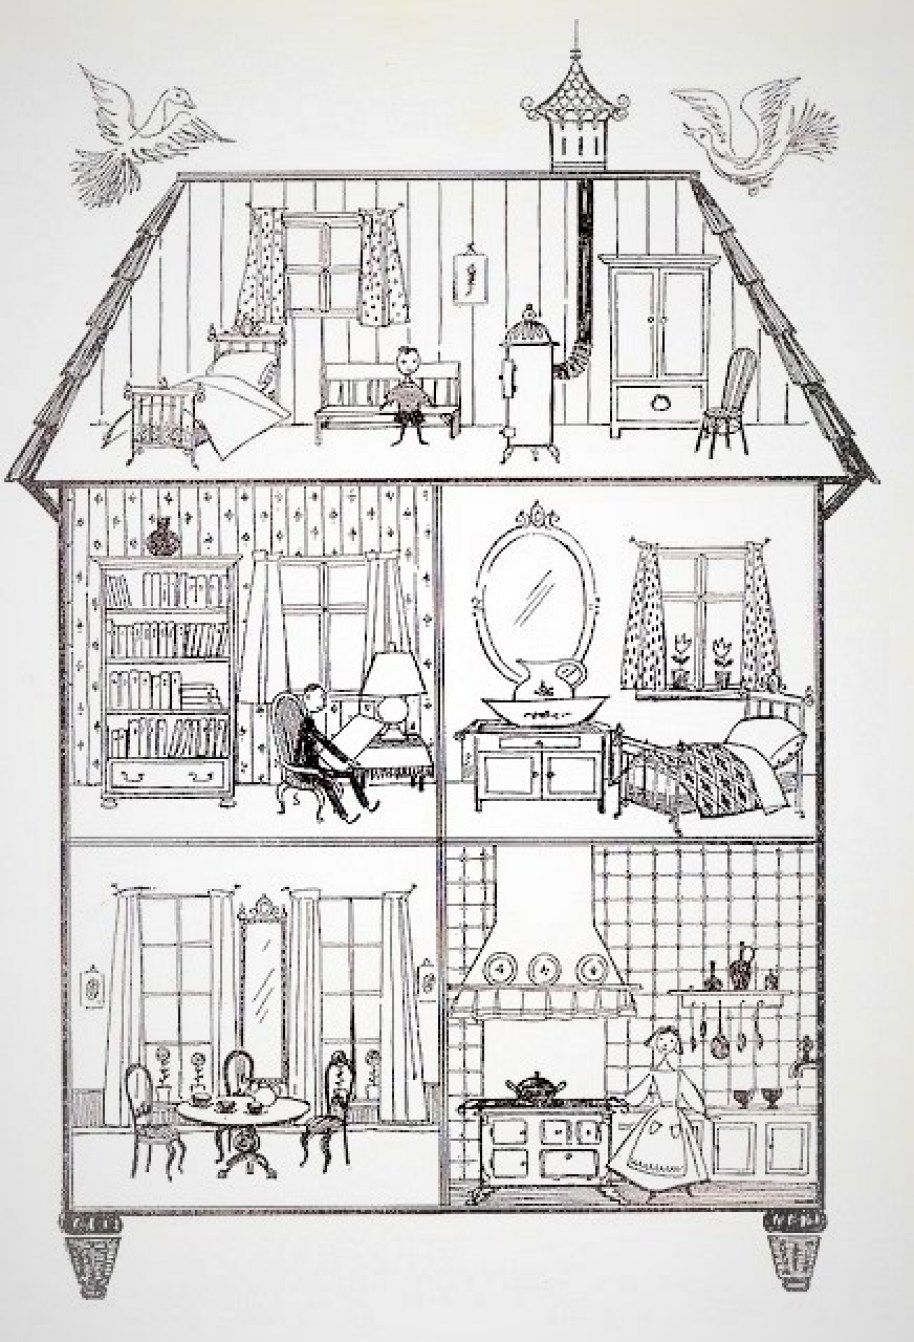 A drawing of the interior of a three-story dollhouse with furnishings